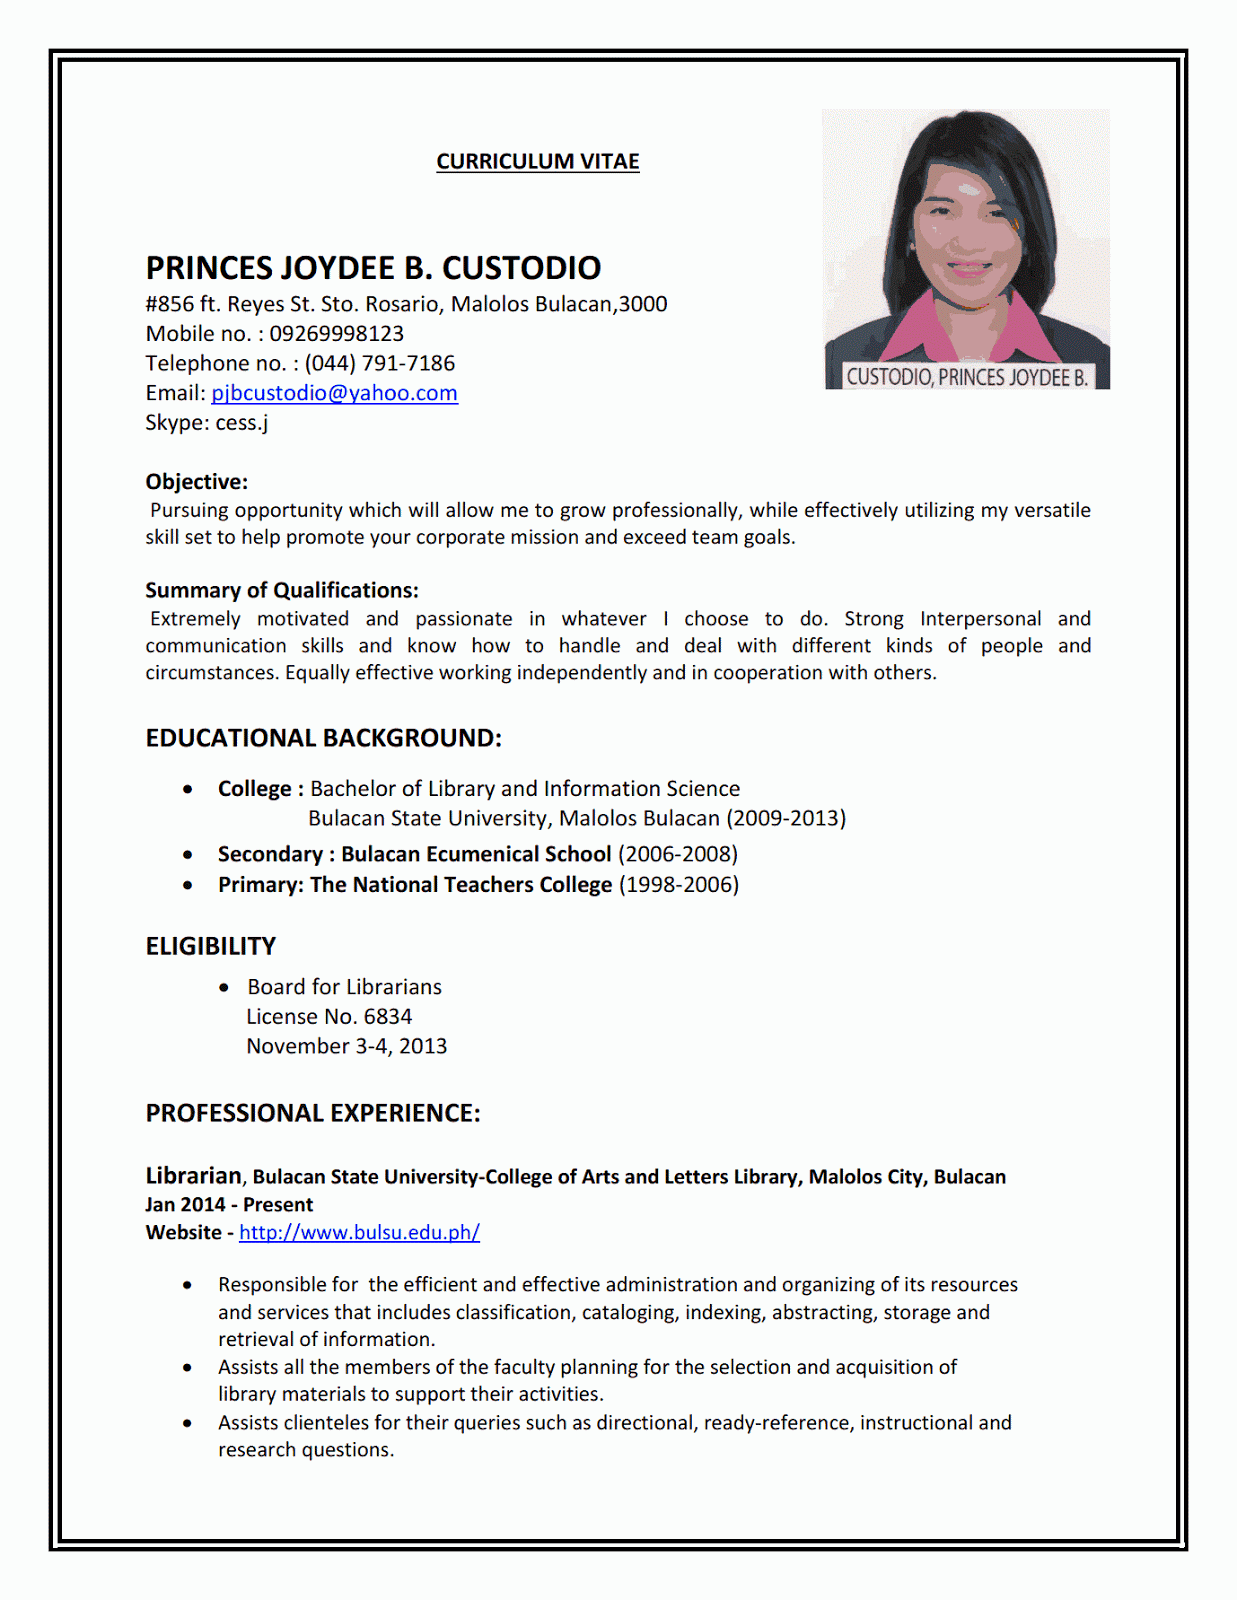 resume sample first job | sample resumes | sample resumes | pinterest - First Job Resume Examples